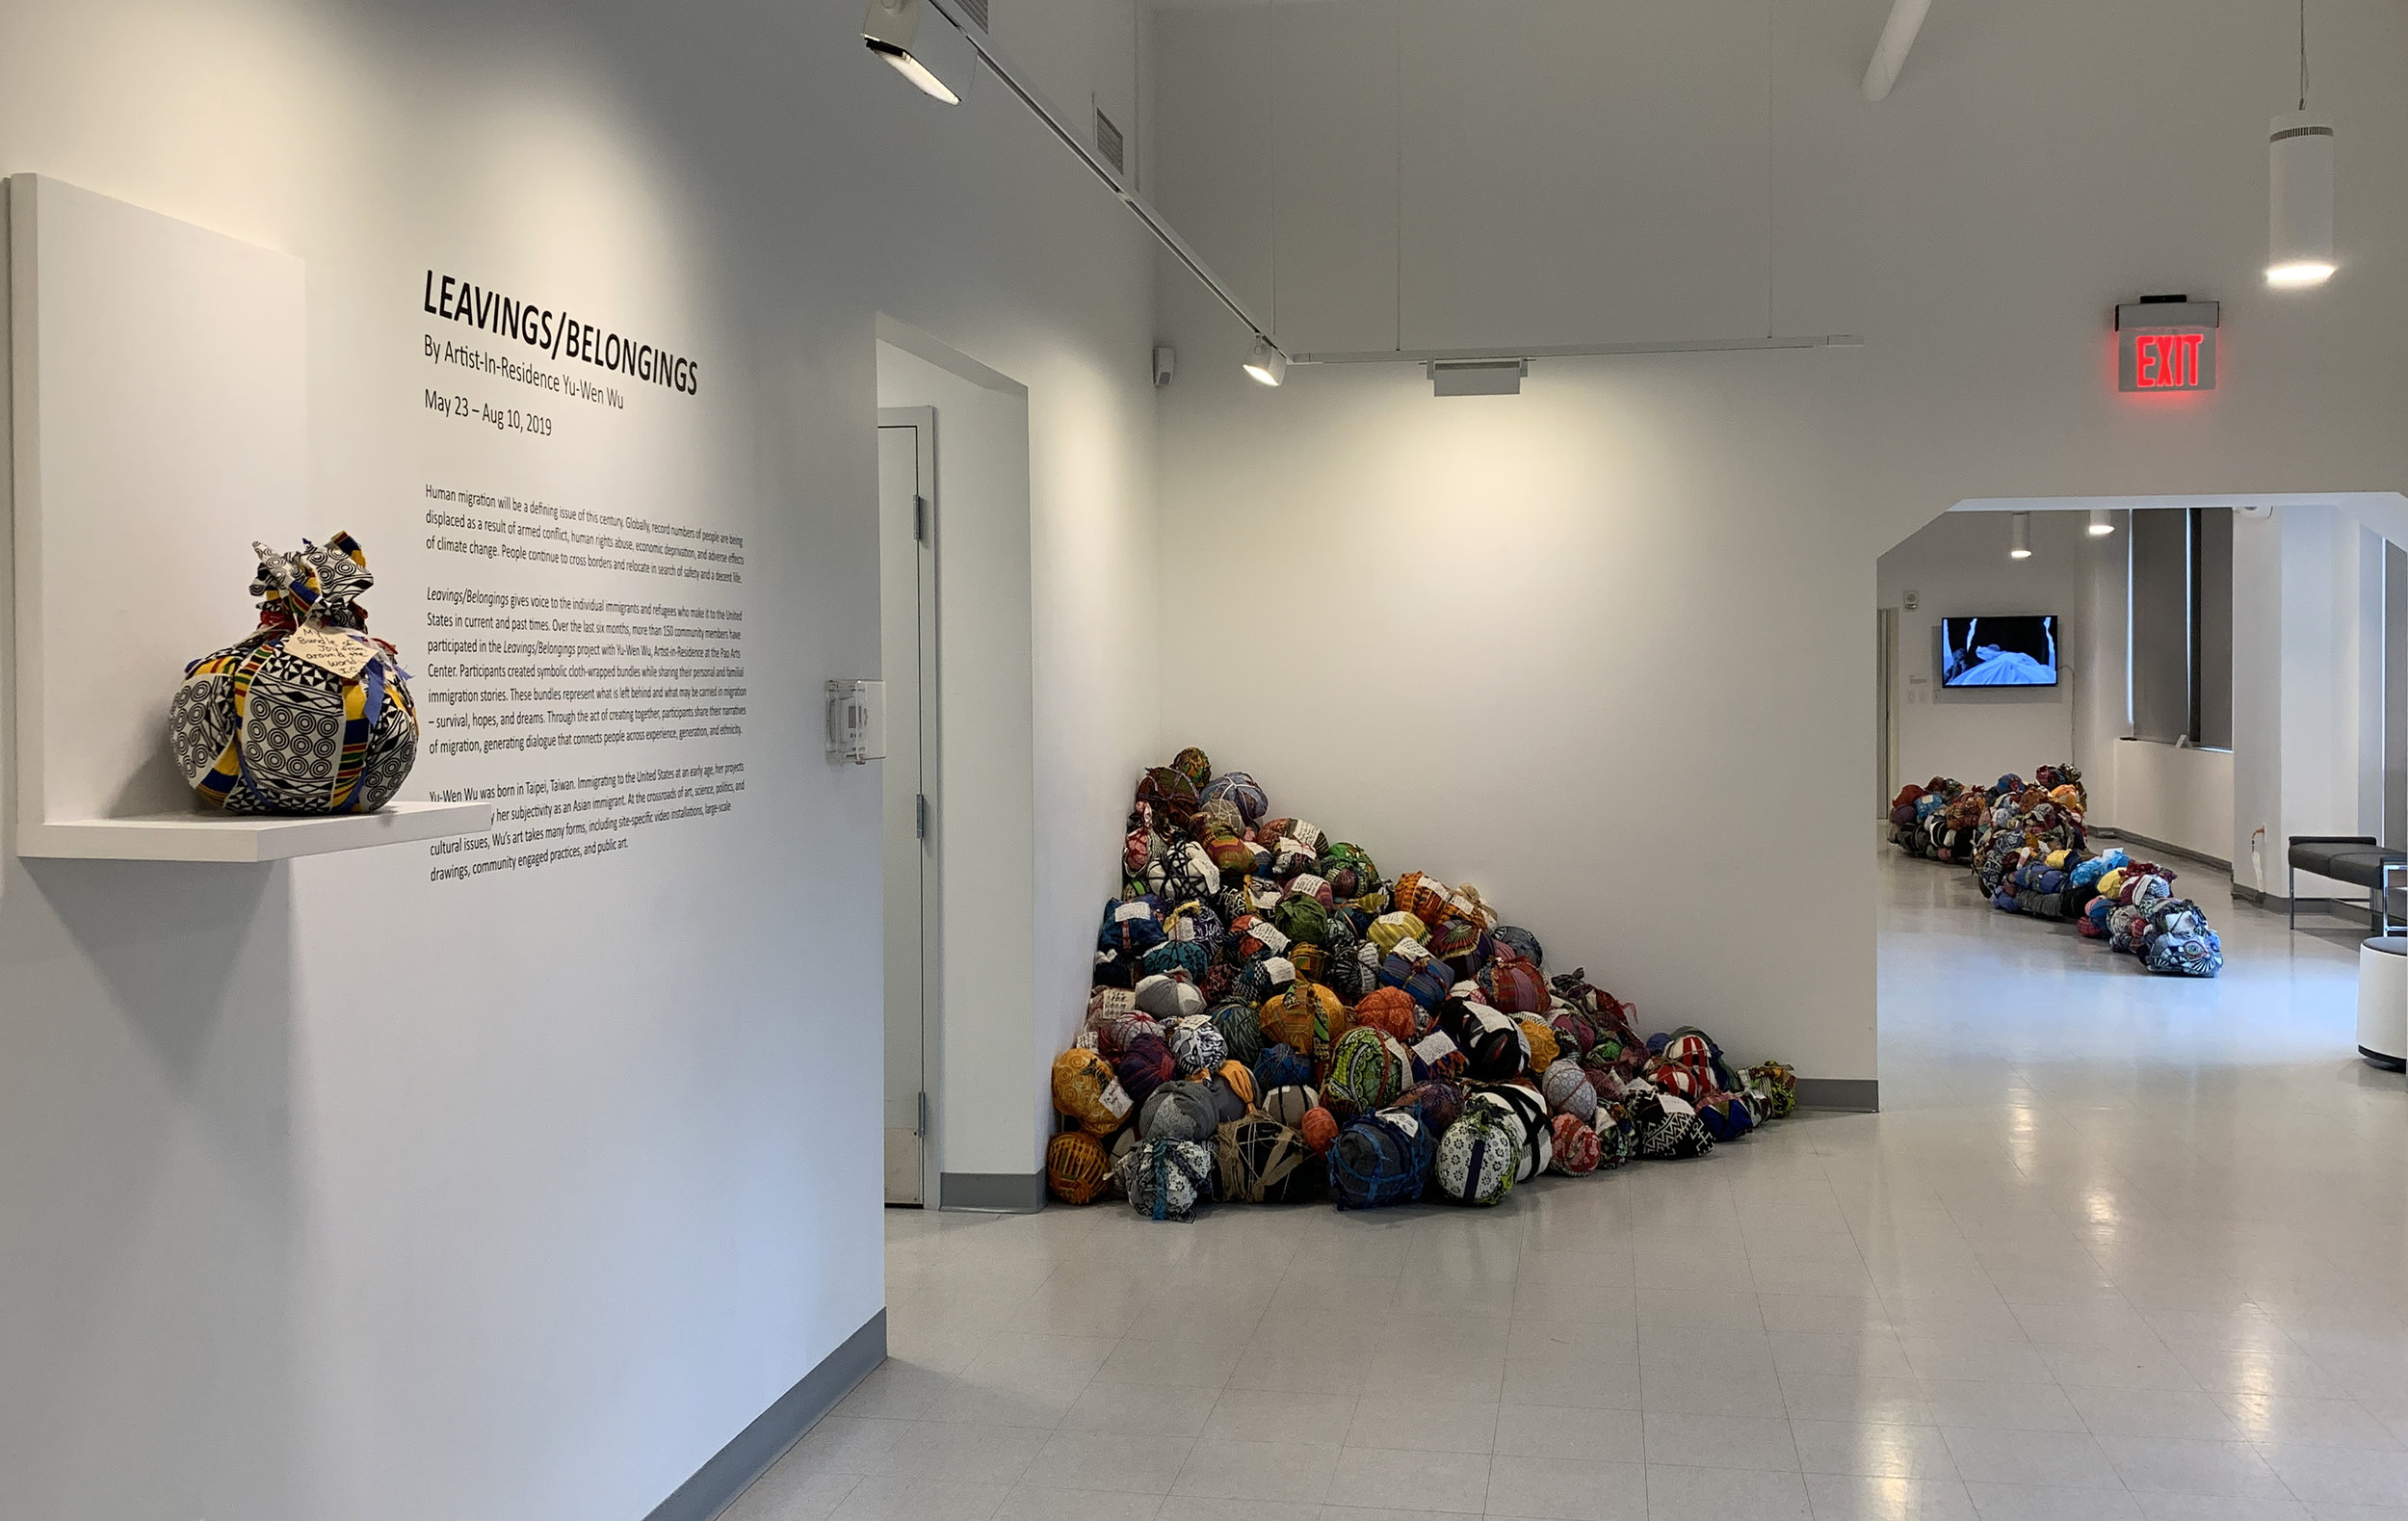 LEAVINGS/BELONGINGS (installation view at the Pao Arts Center, Boston MA)